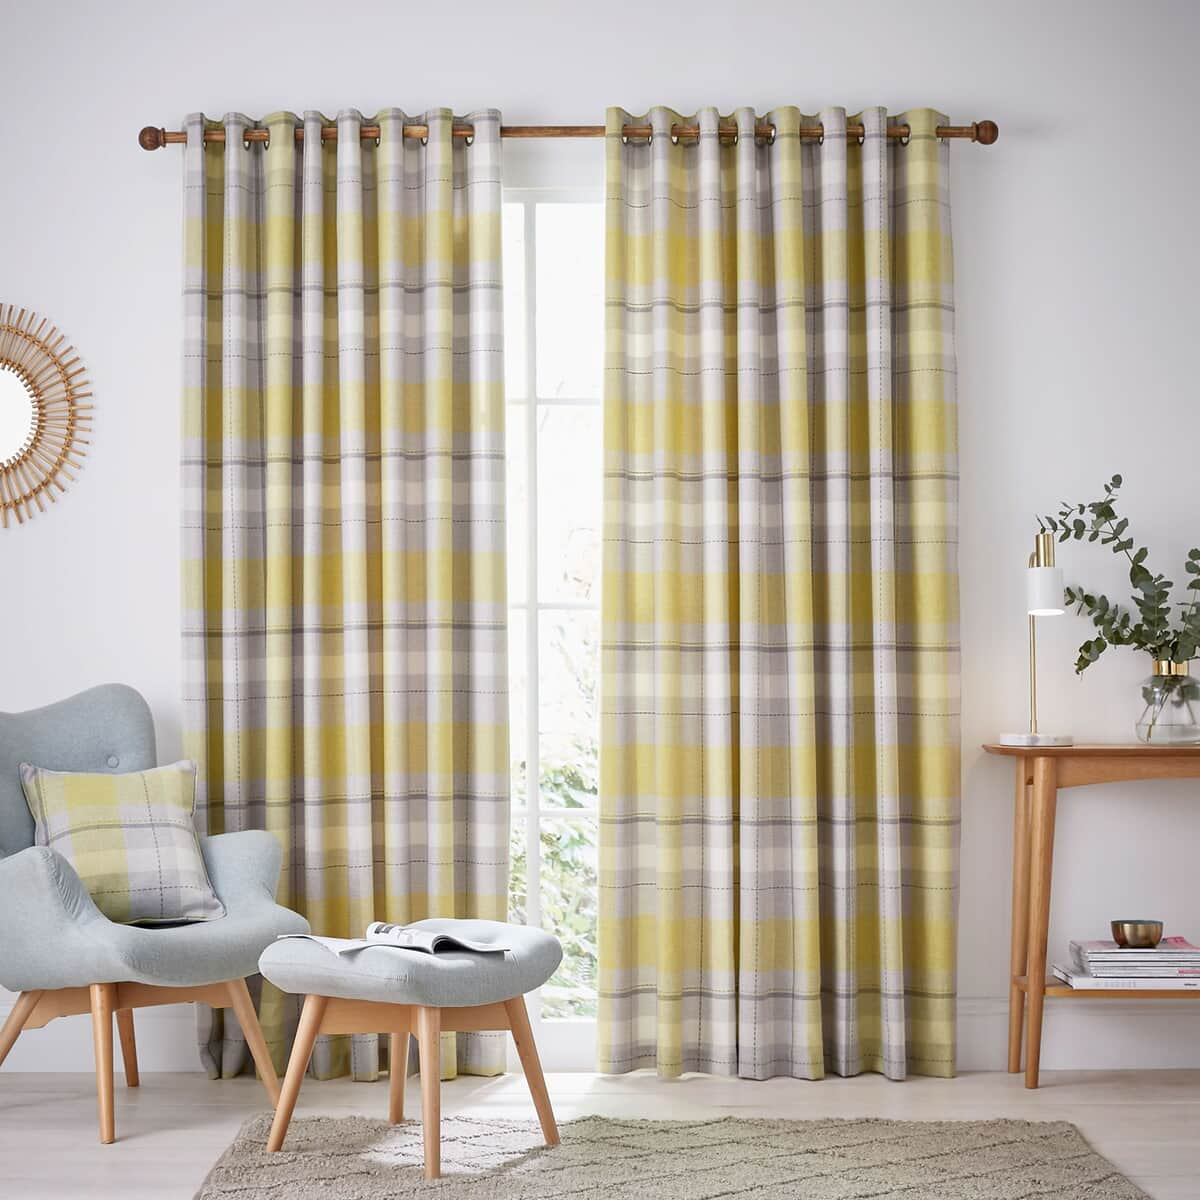 Helena Springfield Nora Chartruse Curtains large